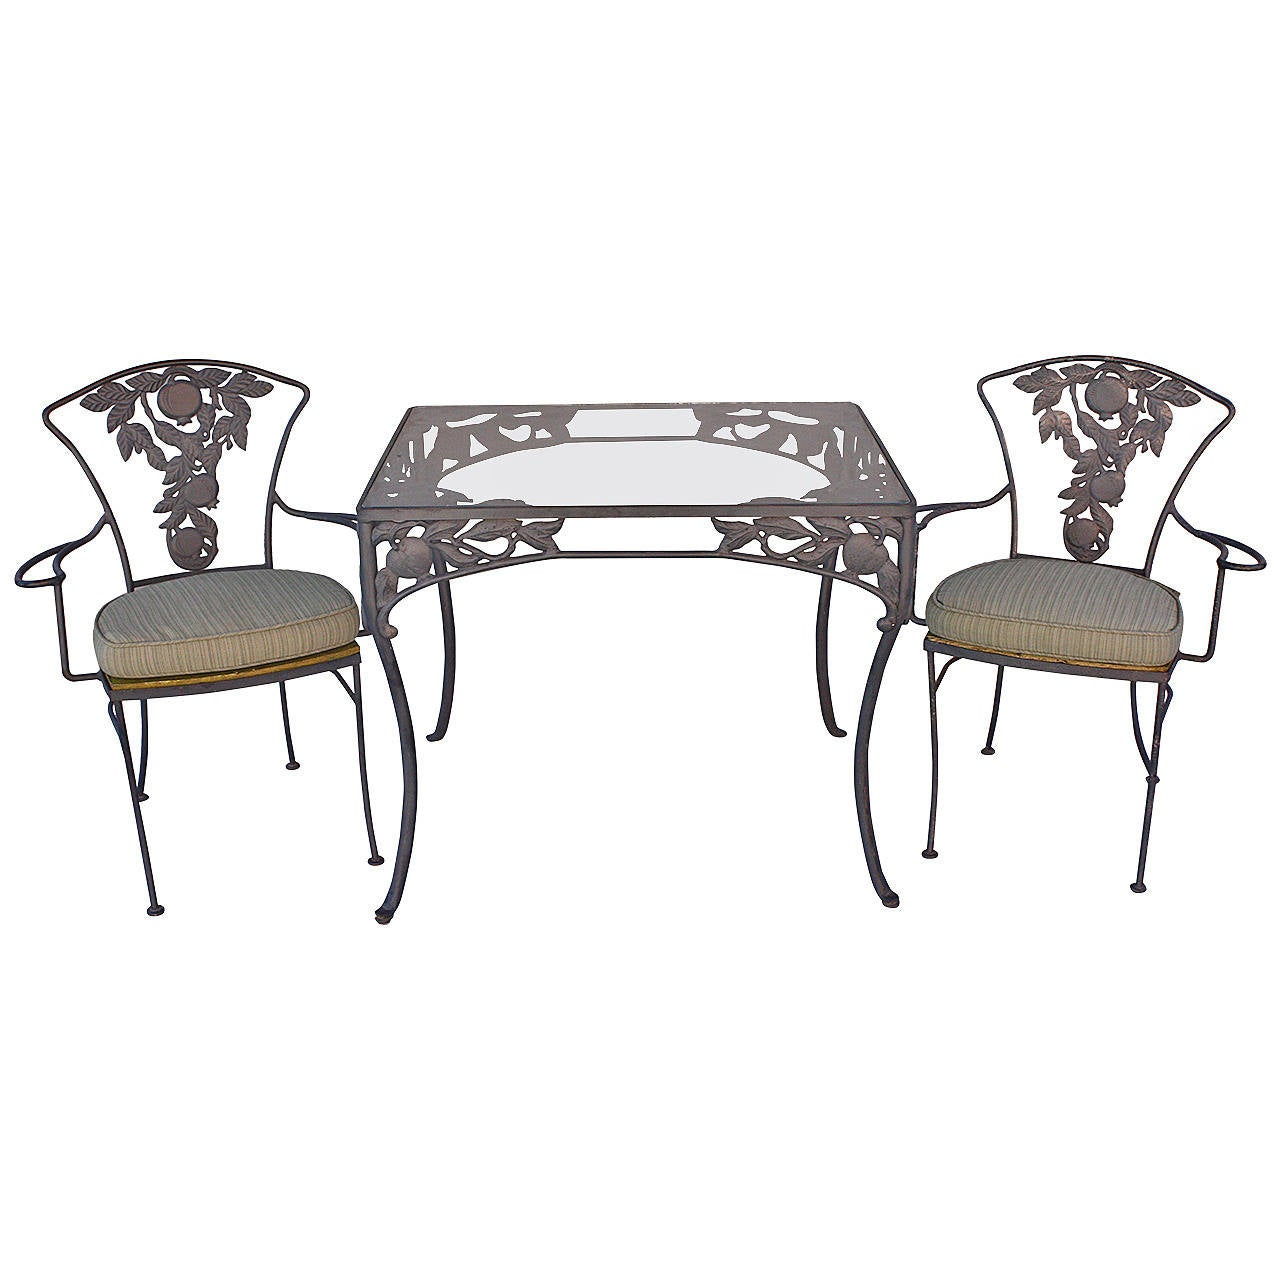 1940s pomegranate patio set table and two chairs at 1stdibs for 1940s furniture design